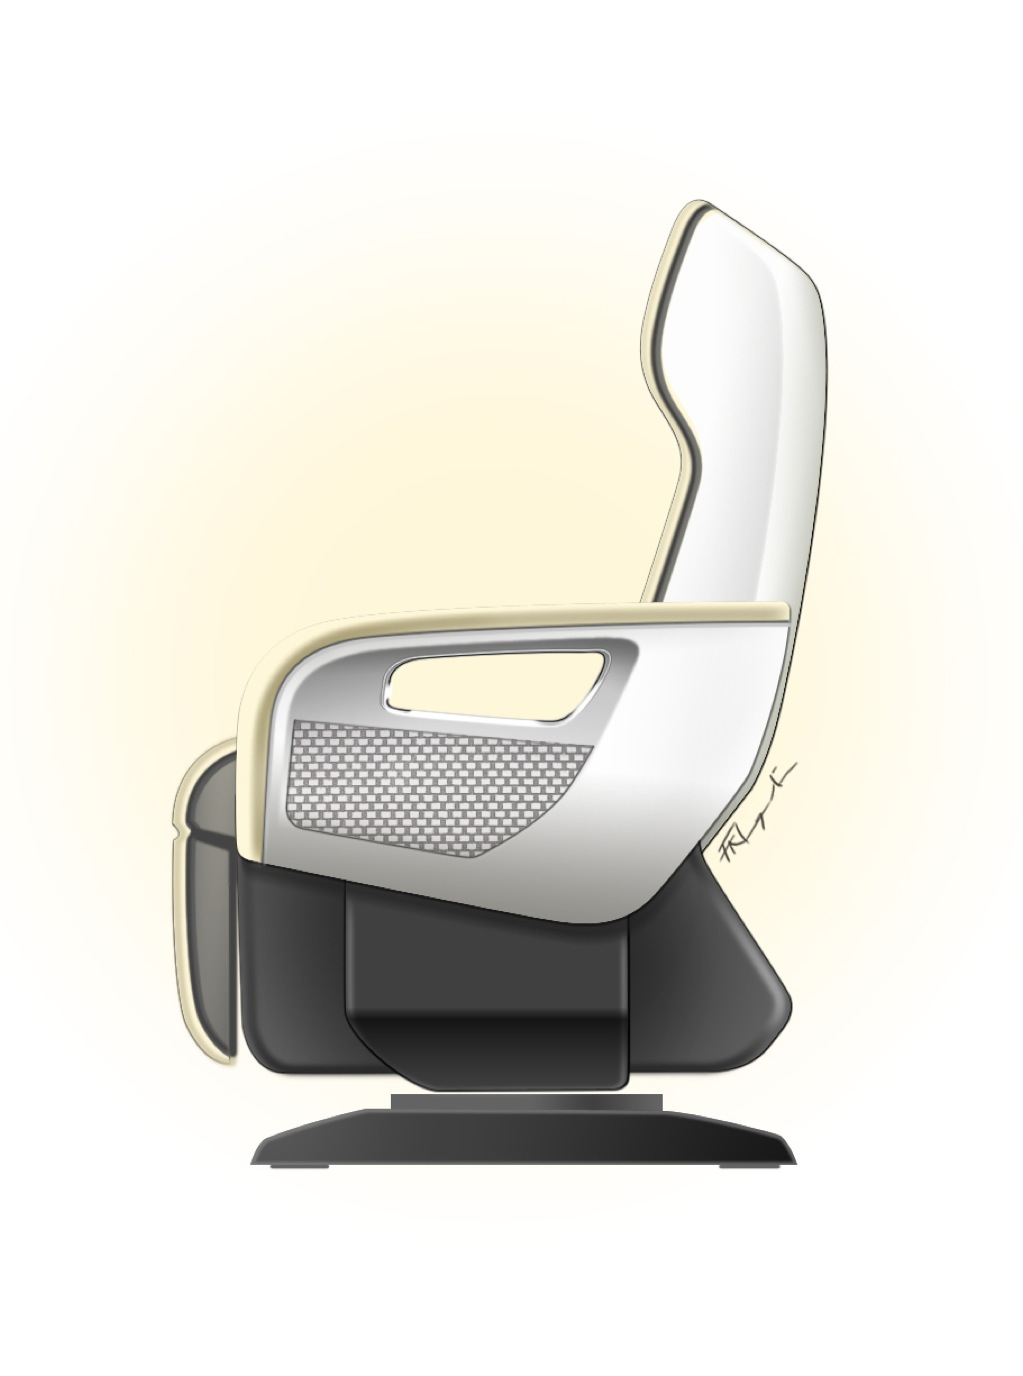 Bmw Business Jet Seats For Iacobucci Hf Autoevolution